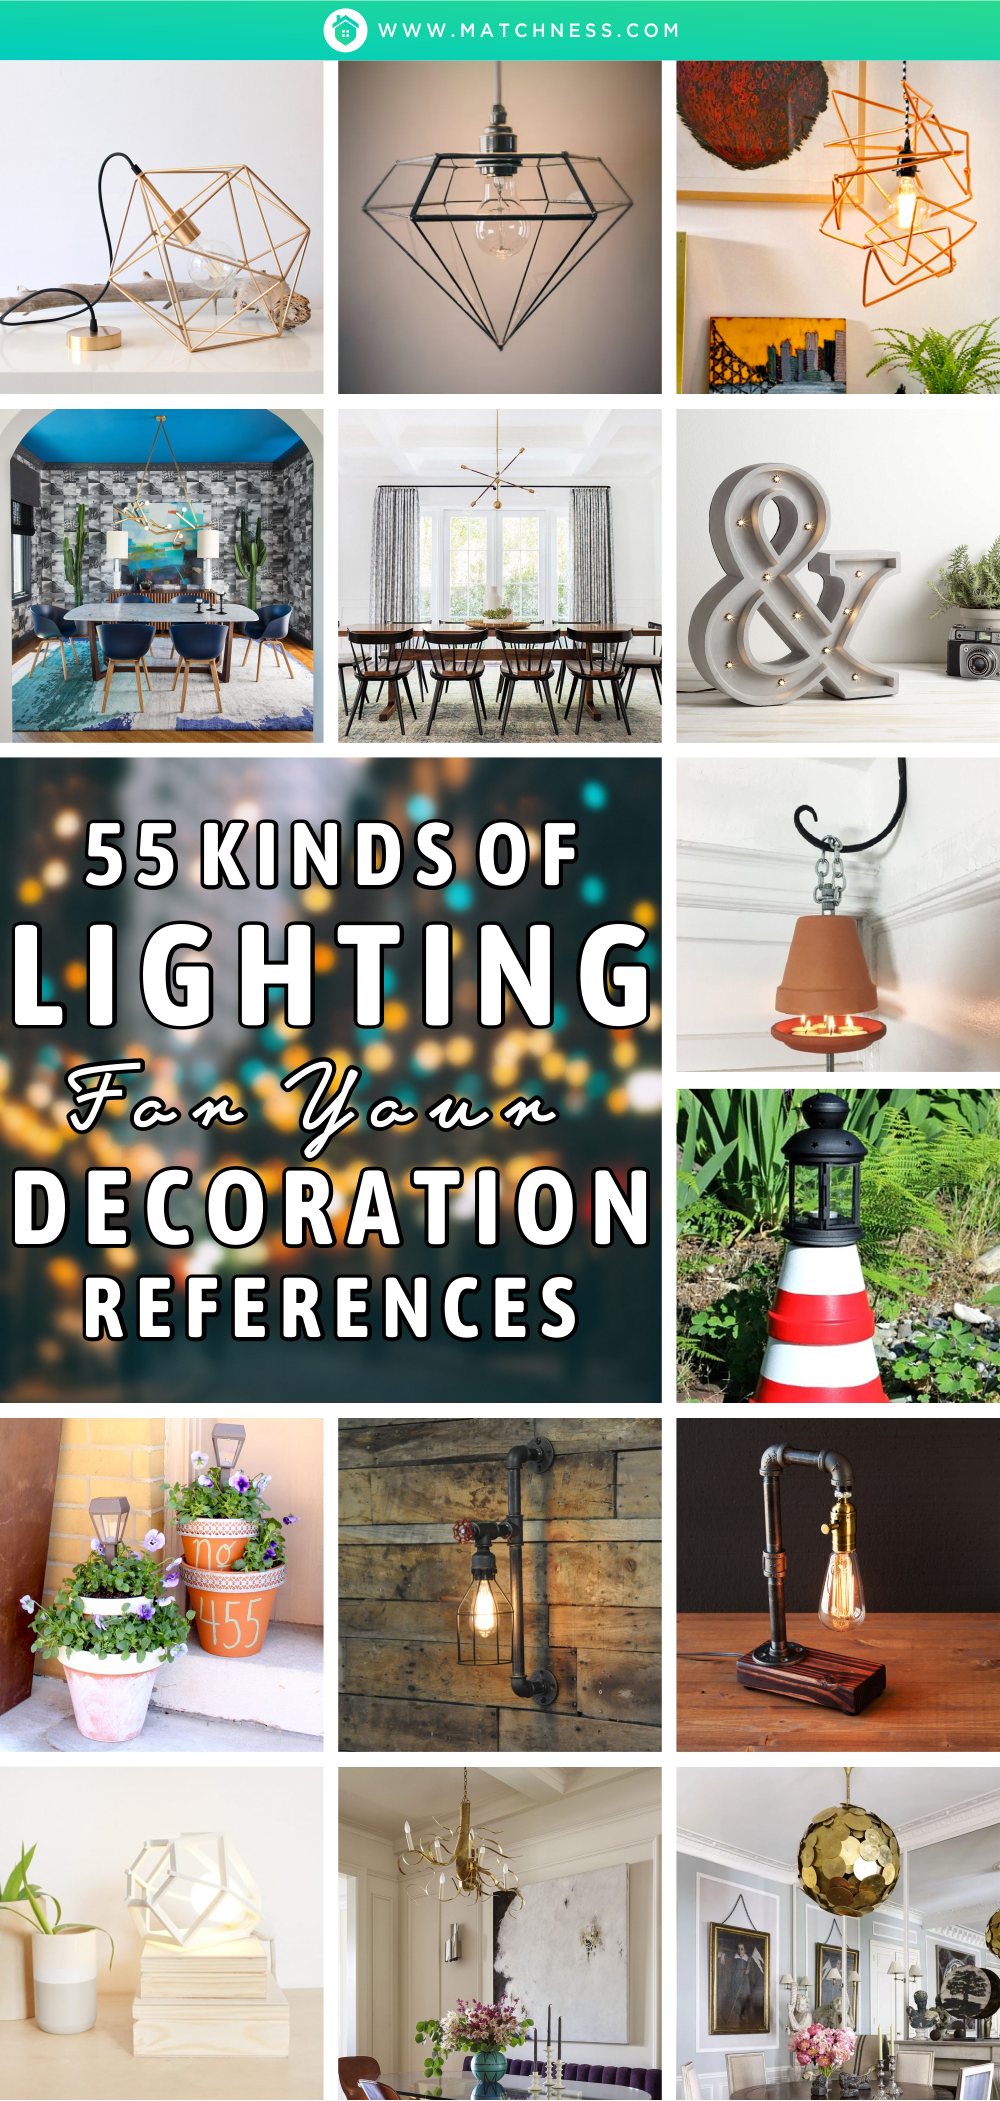 55-kinds-of-lighting-for-your-decoration-references1